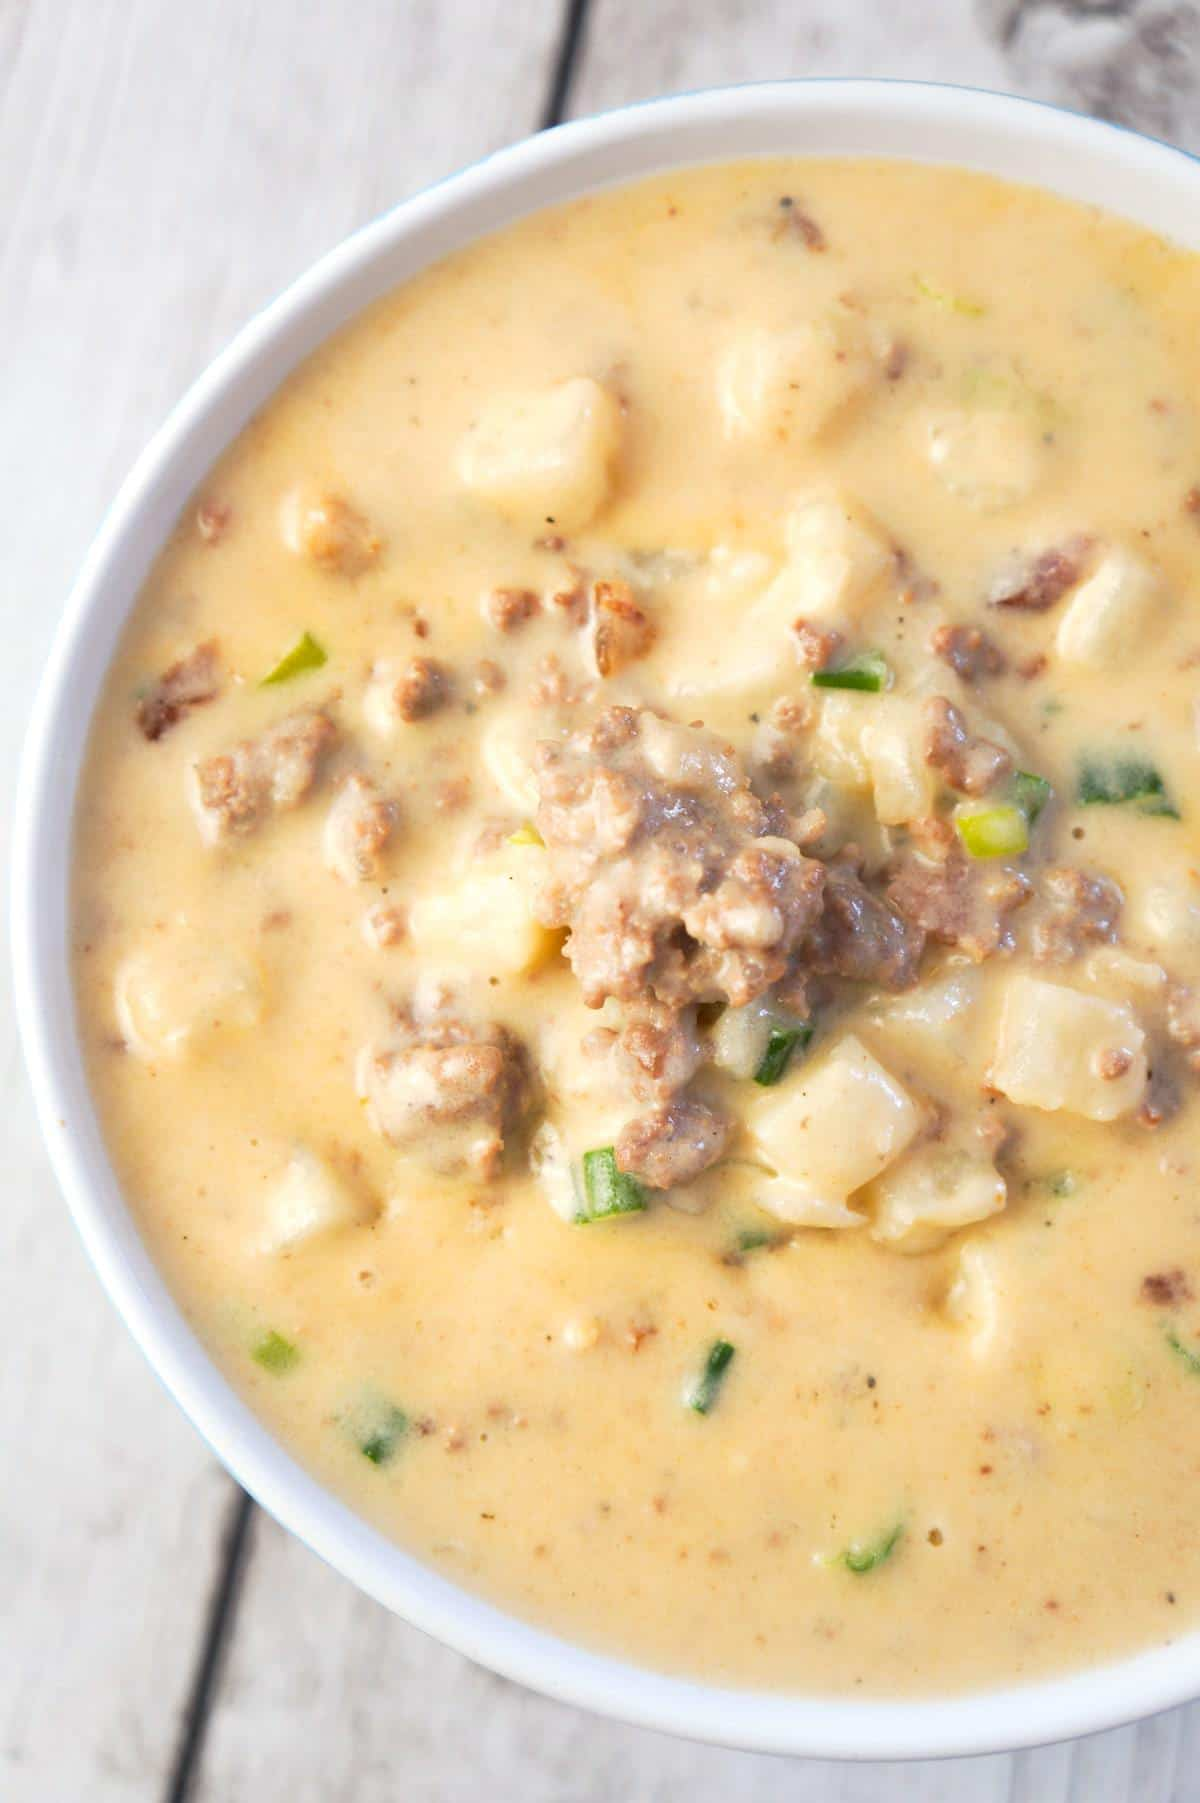 Instant Pot Bacon Cheeseburger Soup with Potatoes is a hearty pressure cooker soup recipe loaded with ground beef, crumbled bacon, diced hash brown potatoes, chopped green onions and cheddar cheese.